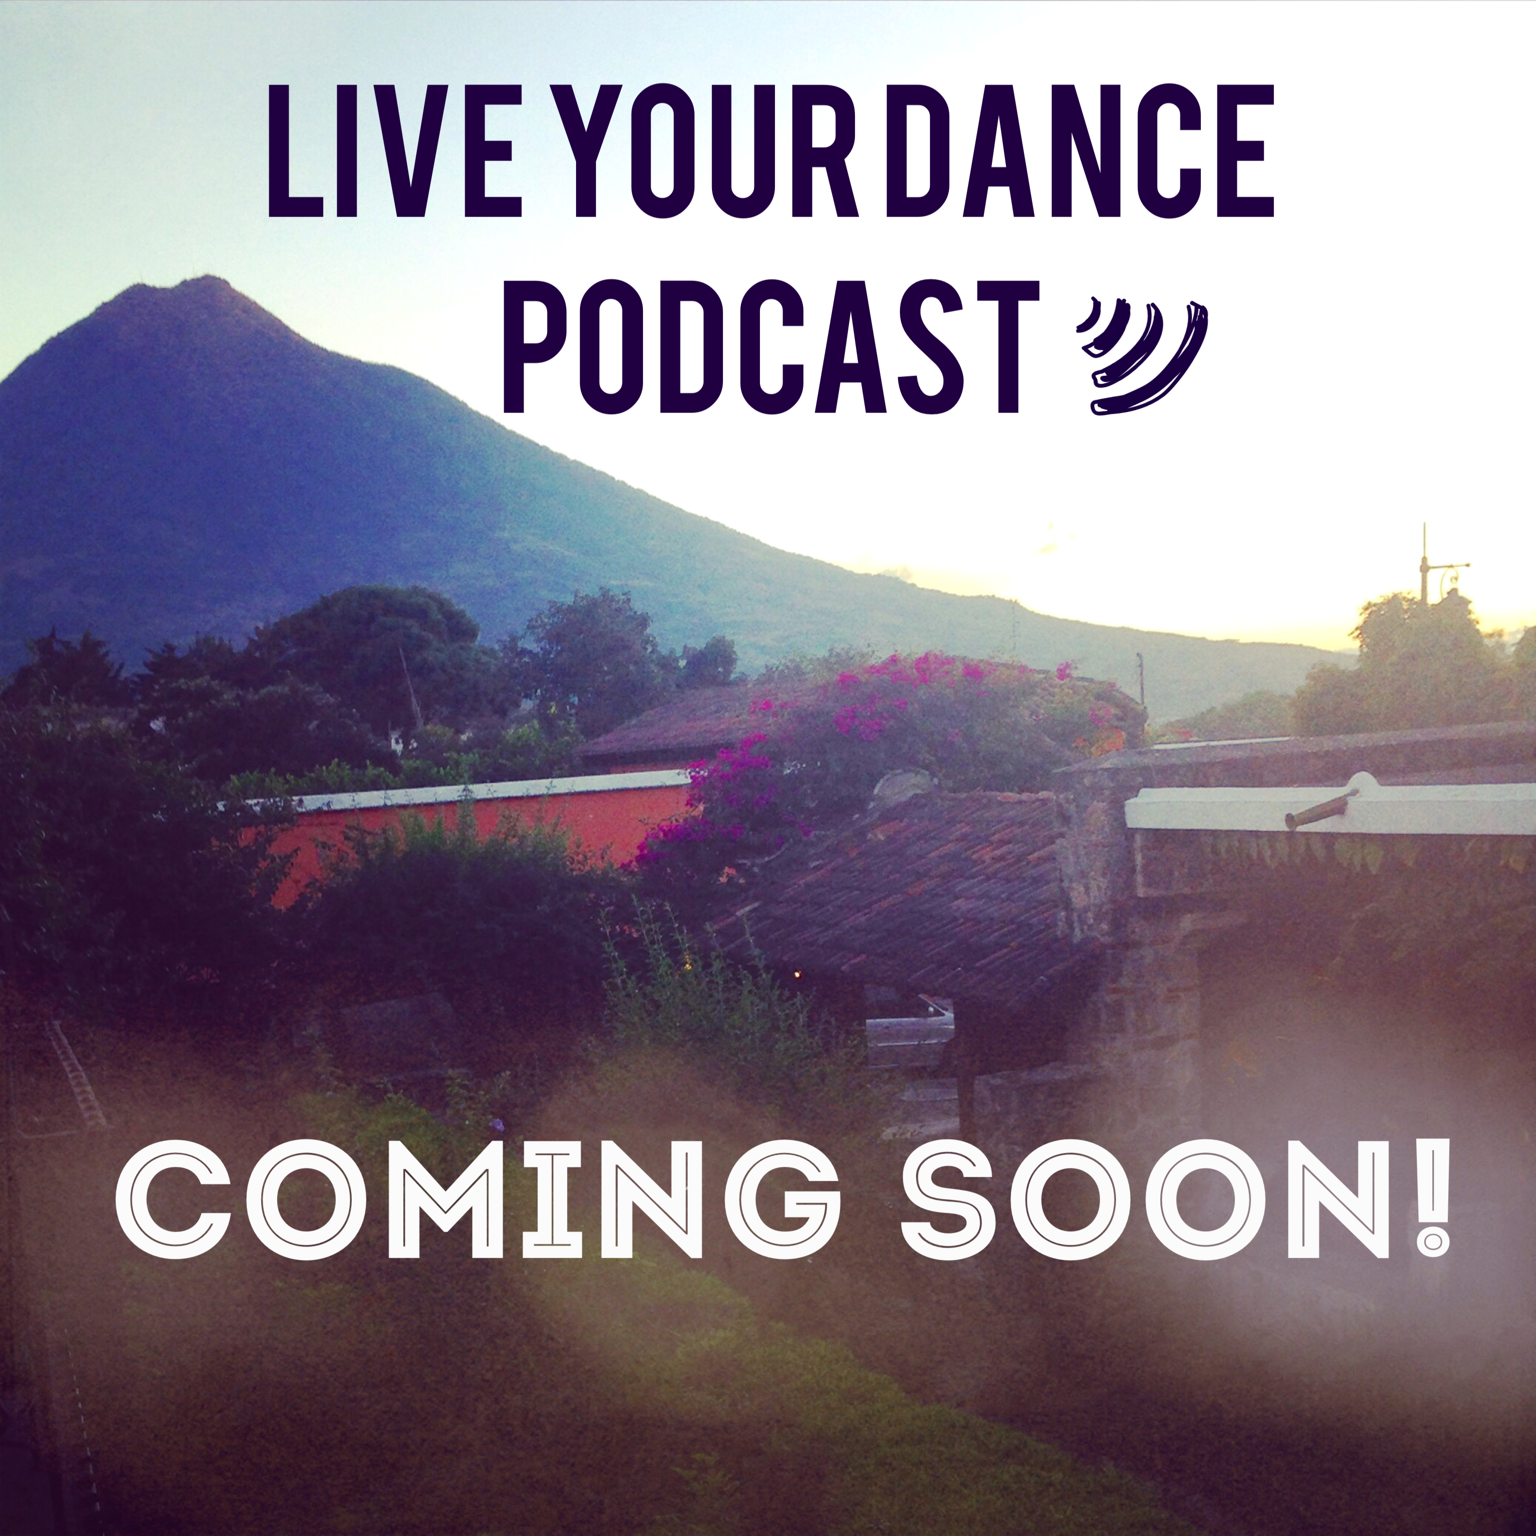 Live-your-dance-podcast_coming-soon_molly-king.png